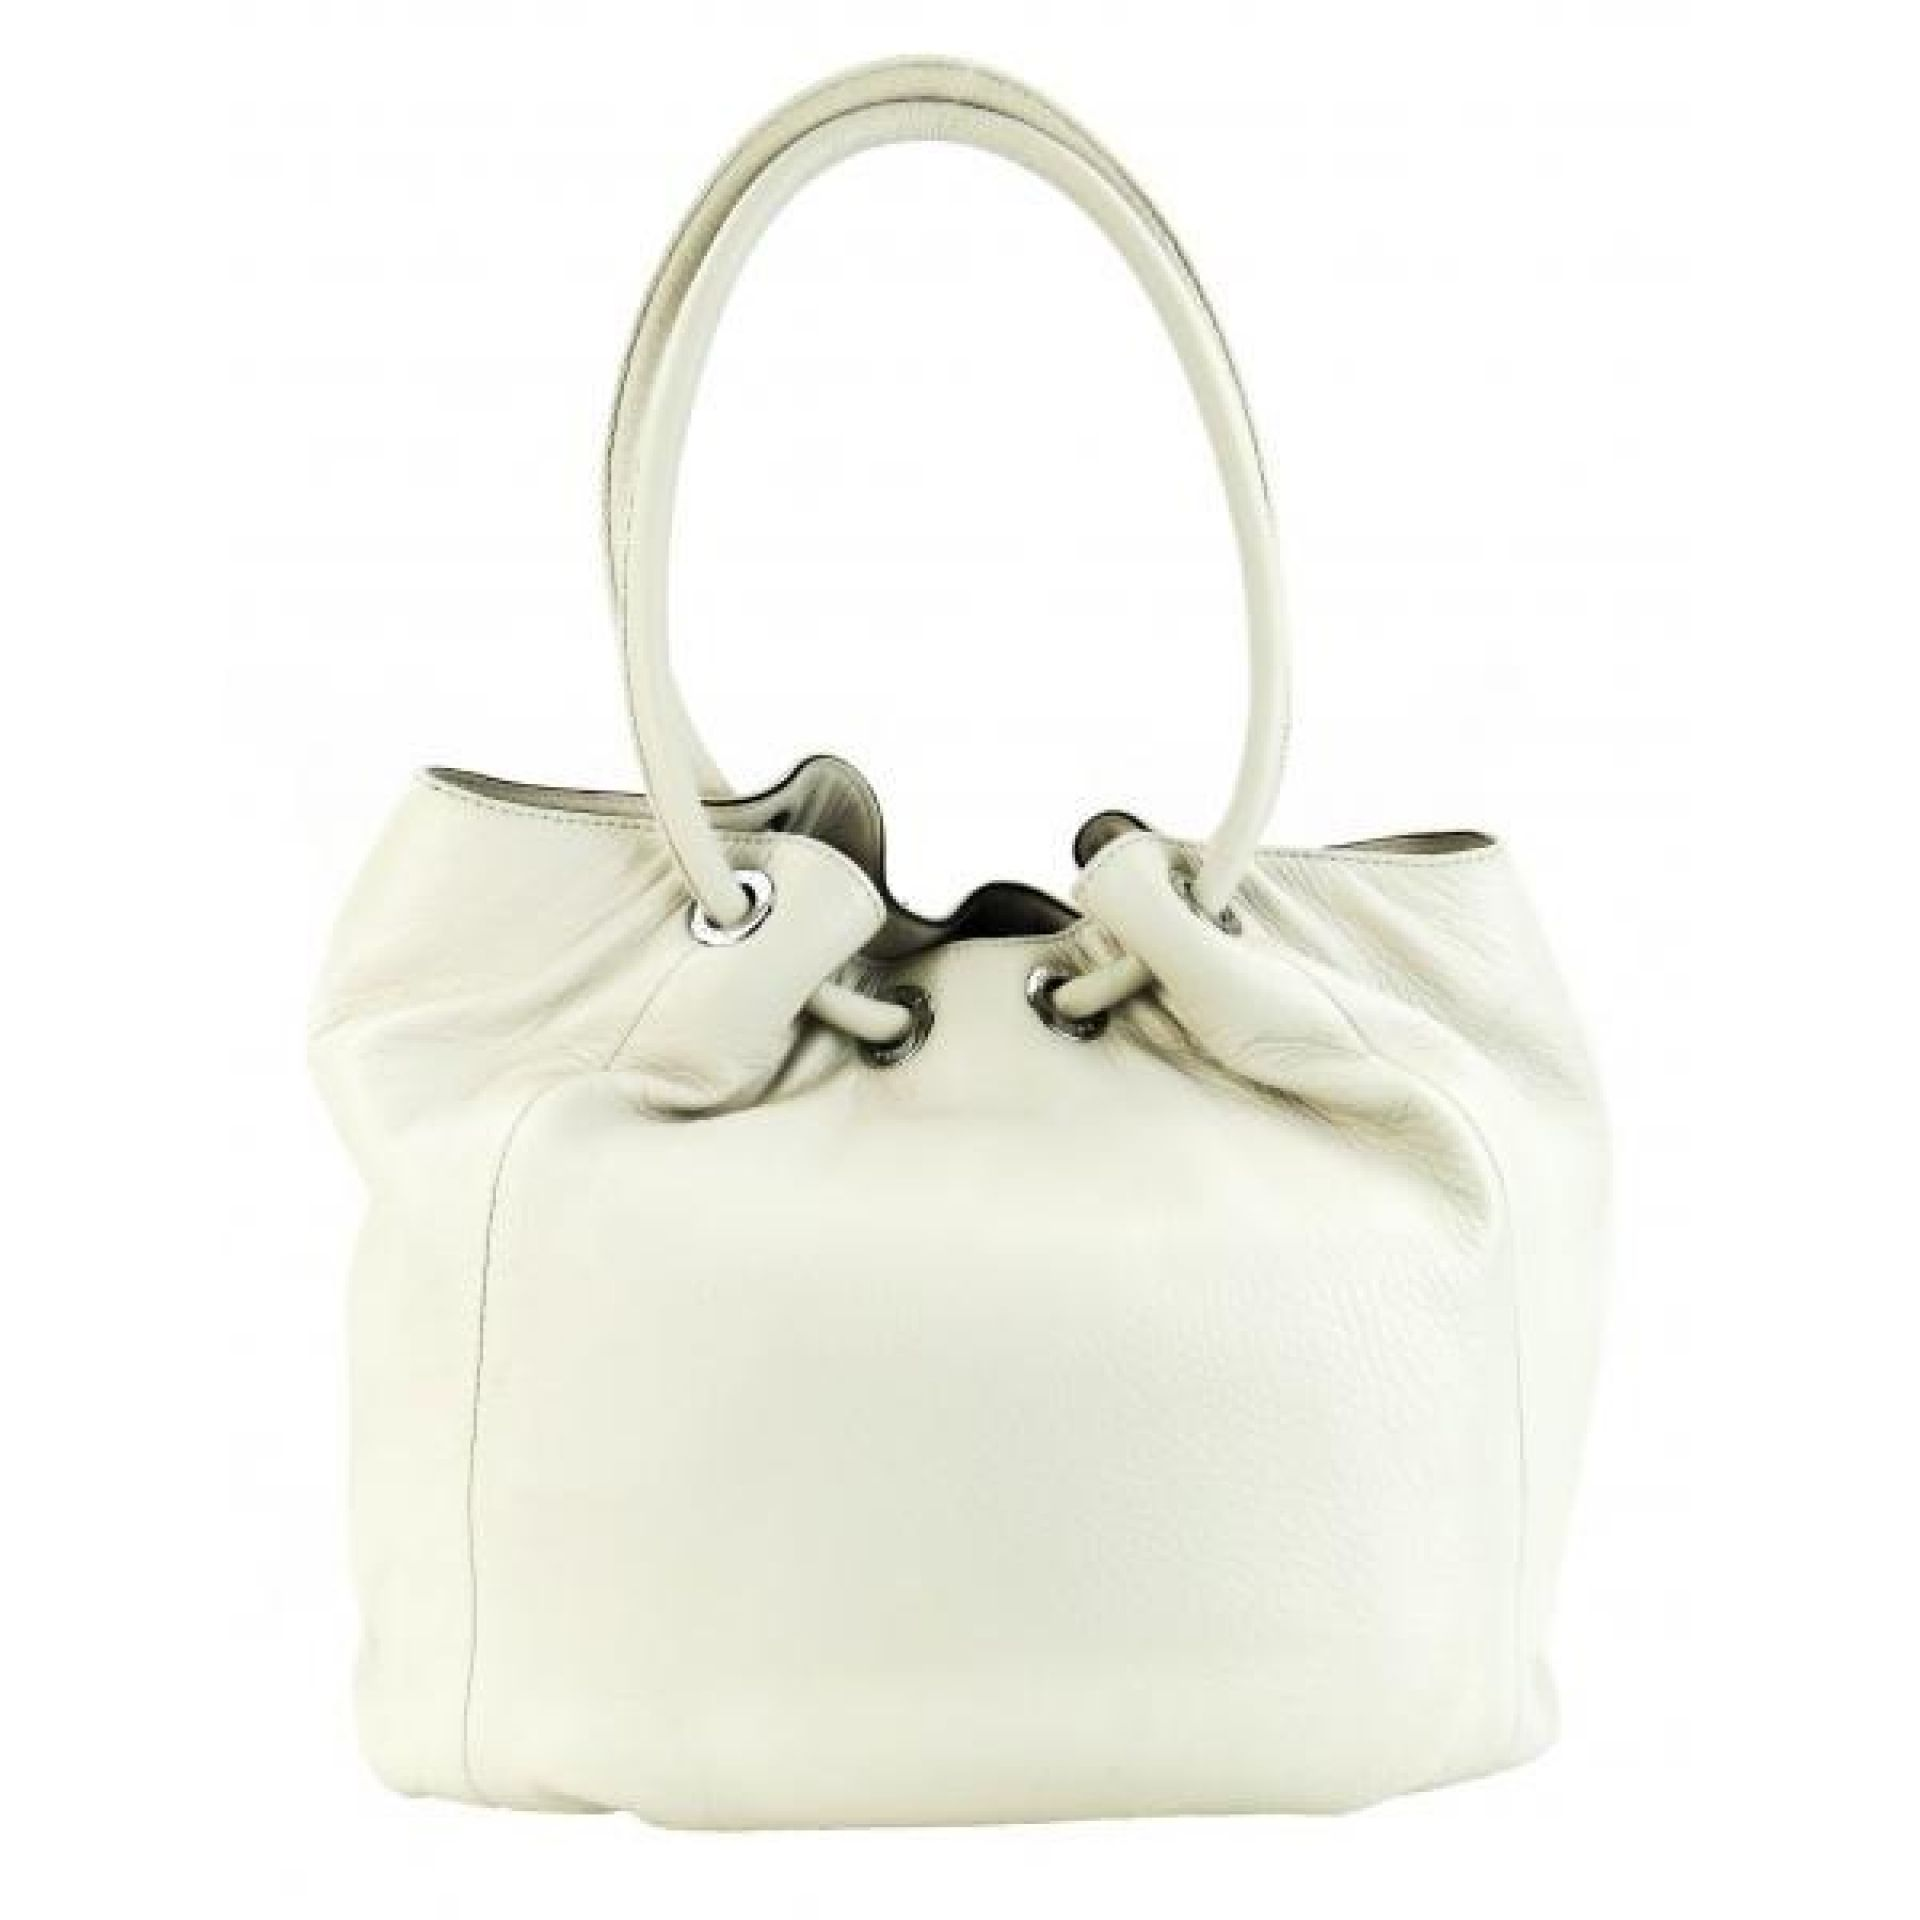 MICHAEL Michael Kors Ivory Leather Medium East West Ring Tote Bag